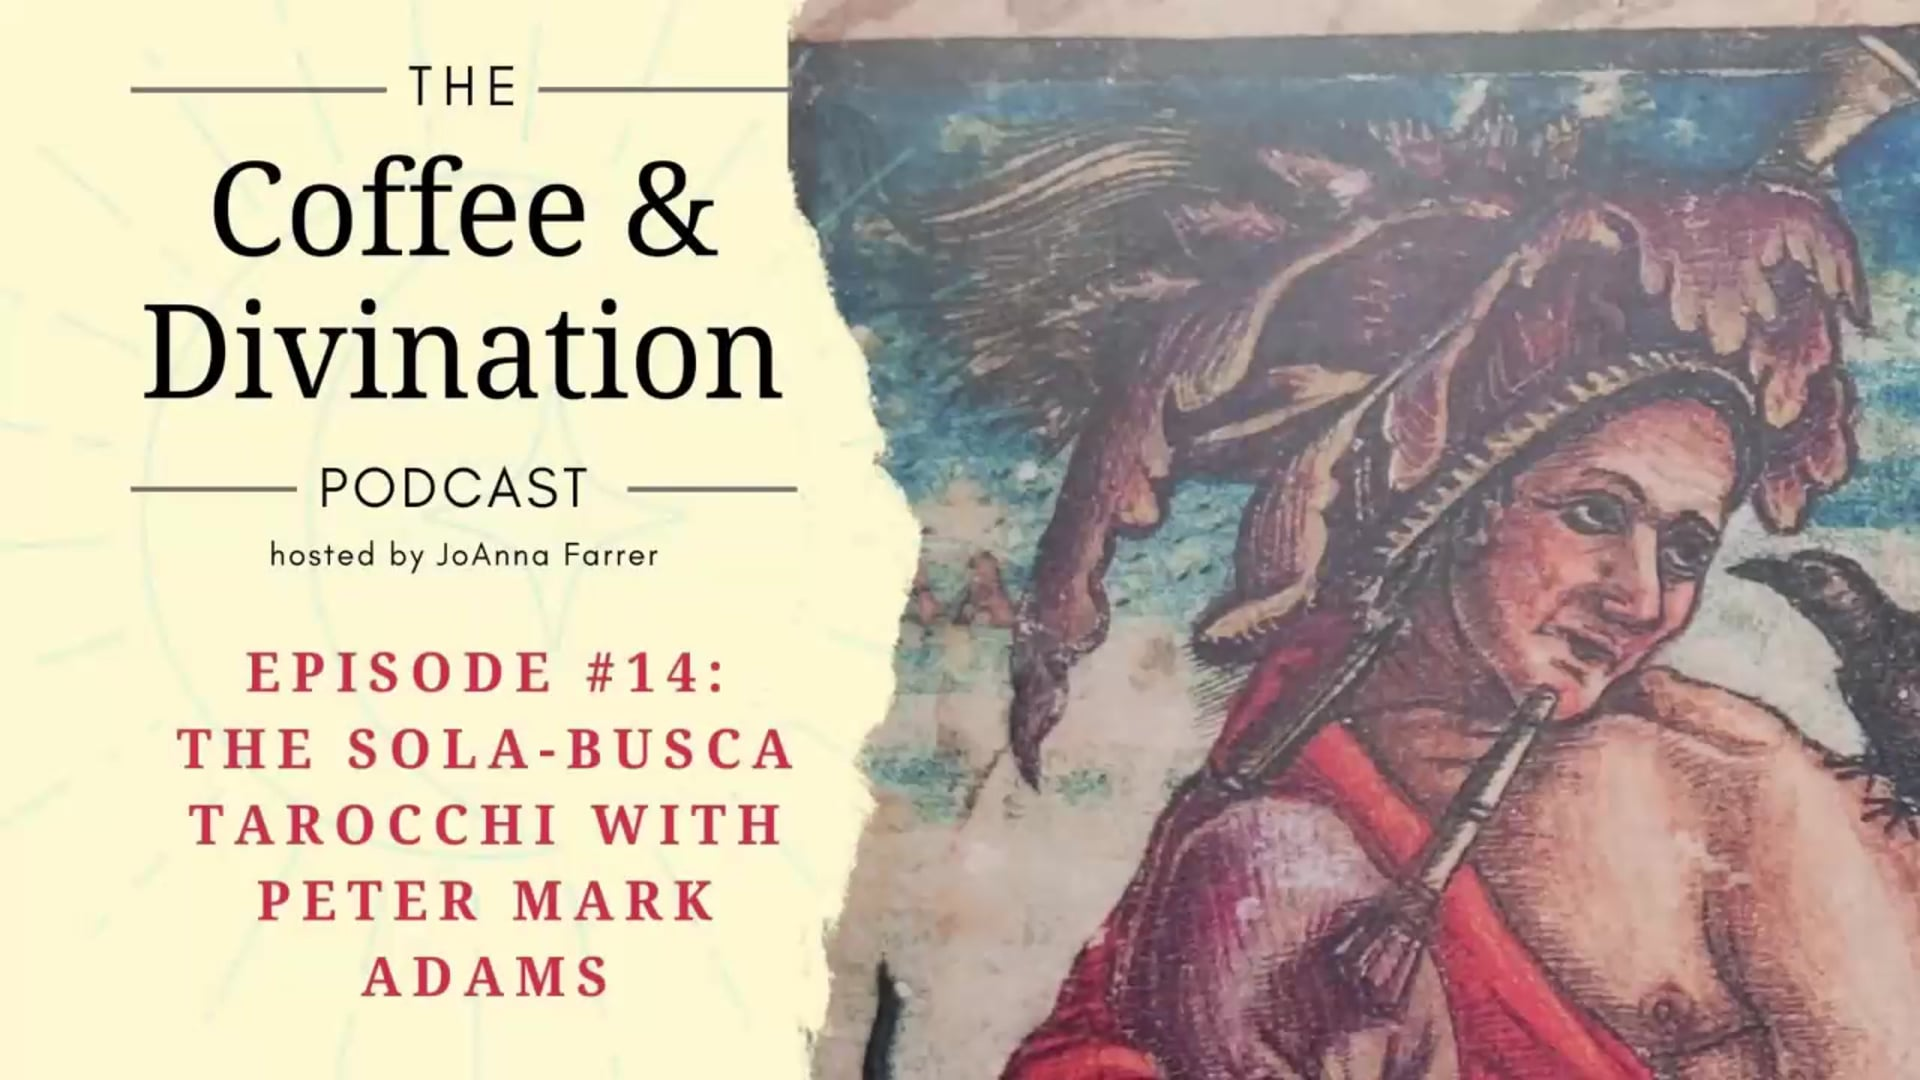 Coffee & Divination - Episode #14: The Sola-Busca Tarocchi and Renaissance Magic with Peter Mark Adams